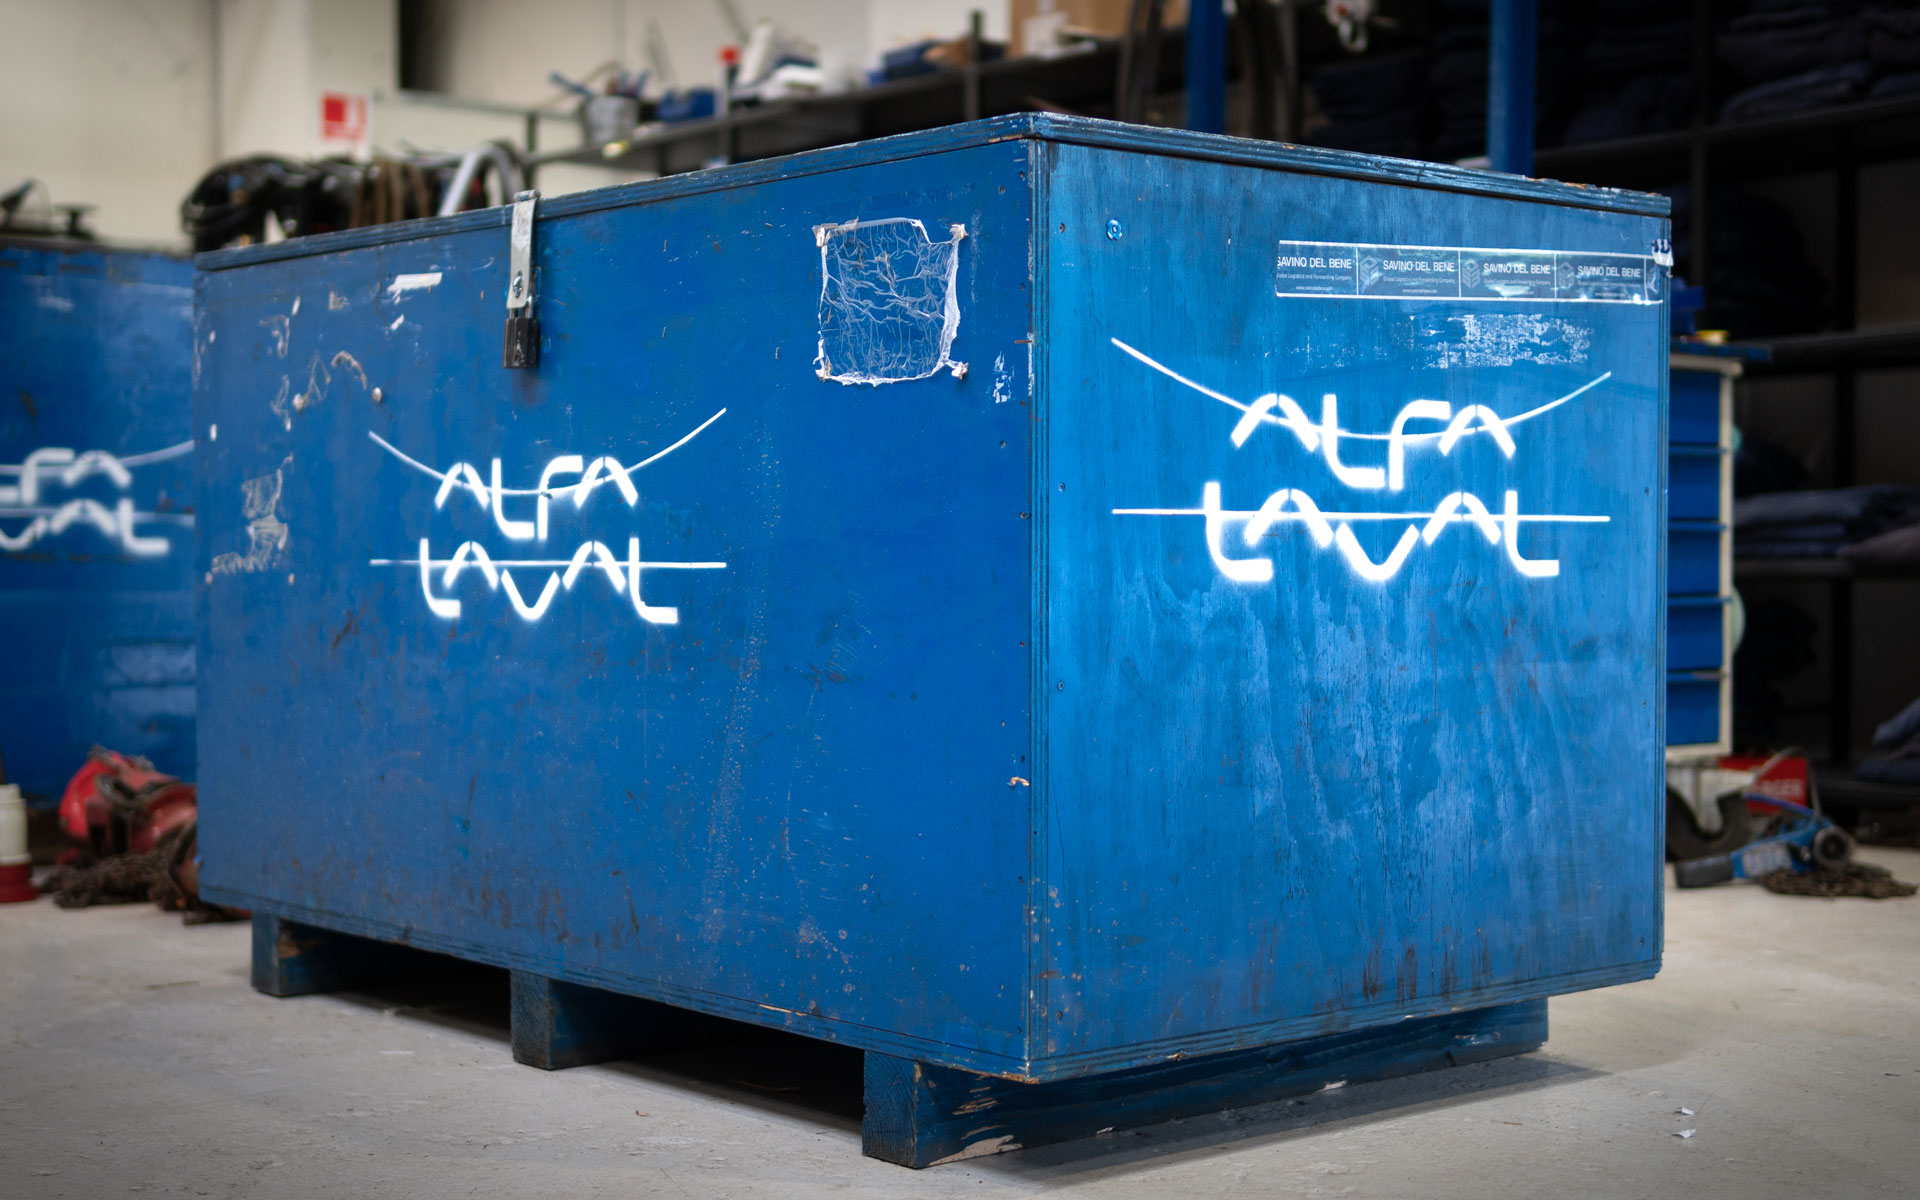 Alfa Laval crate with Omega Yard inside